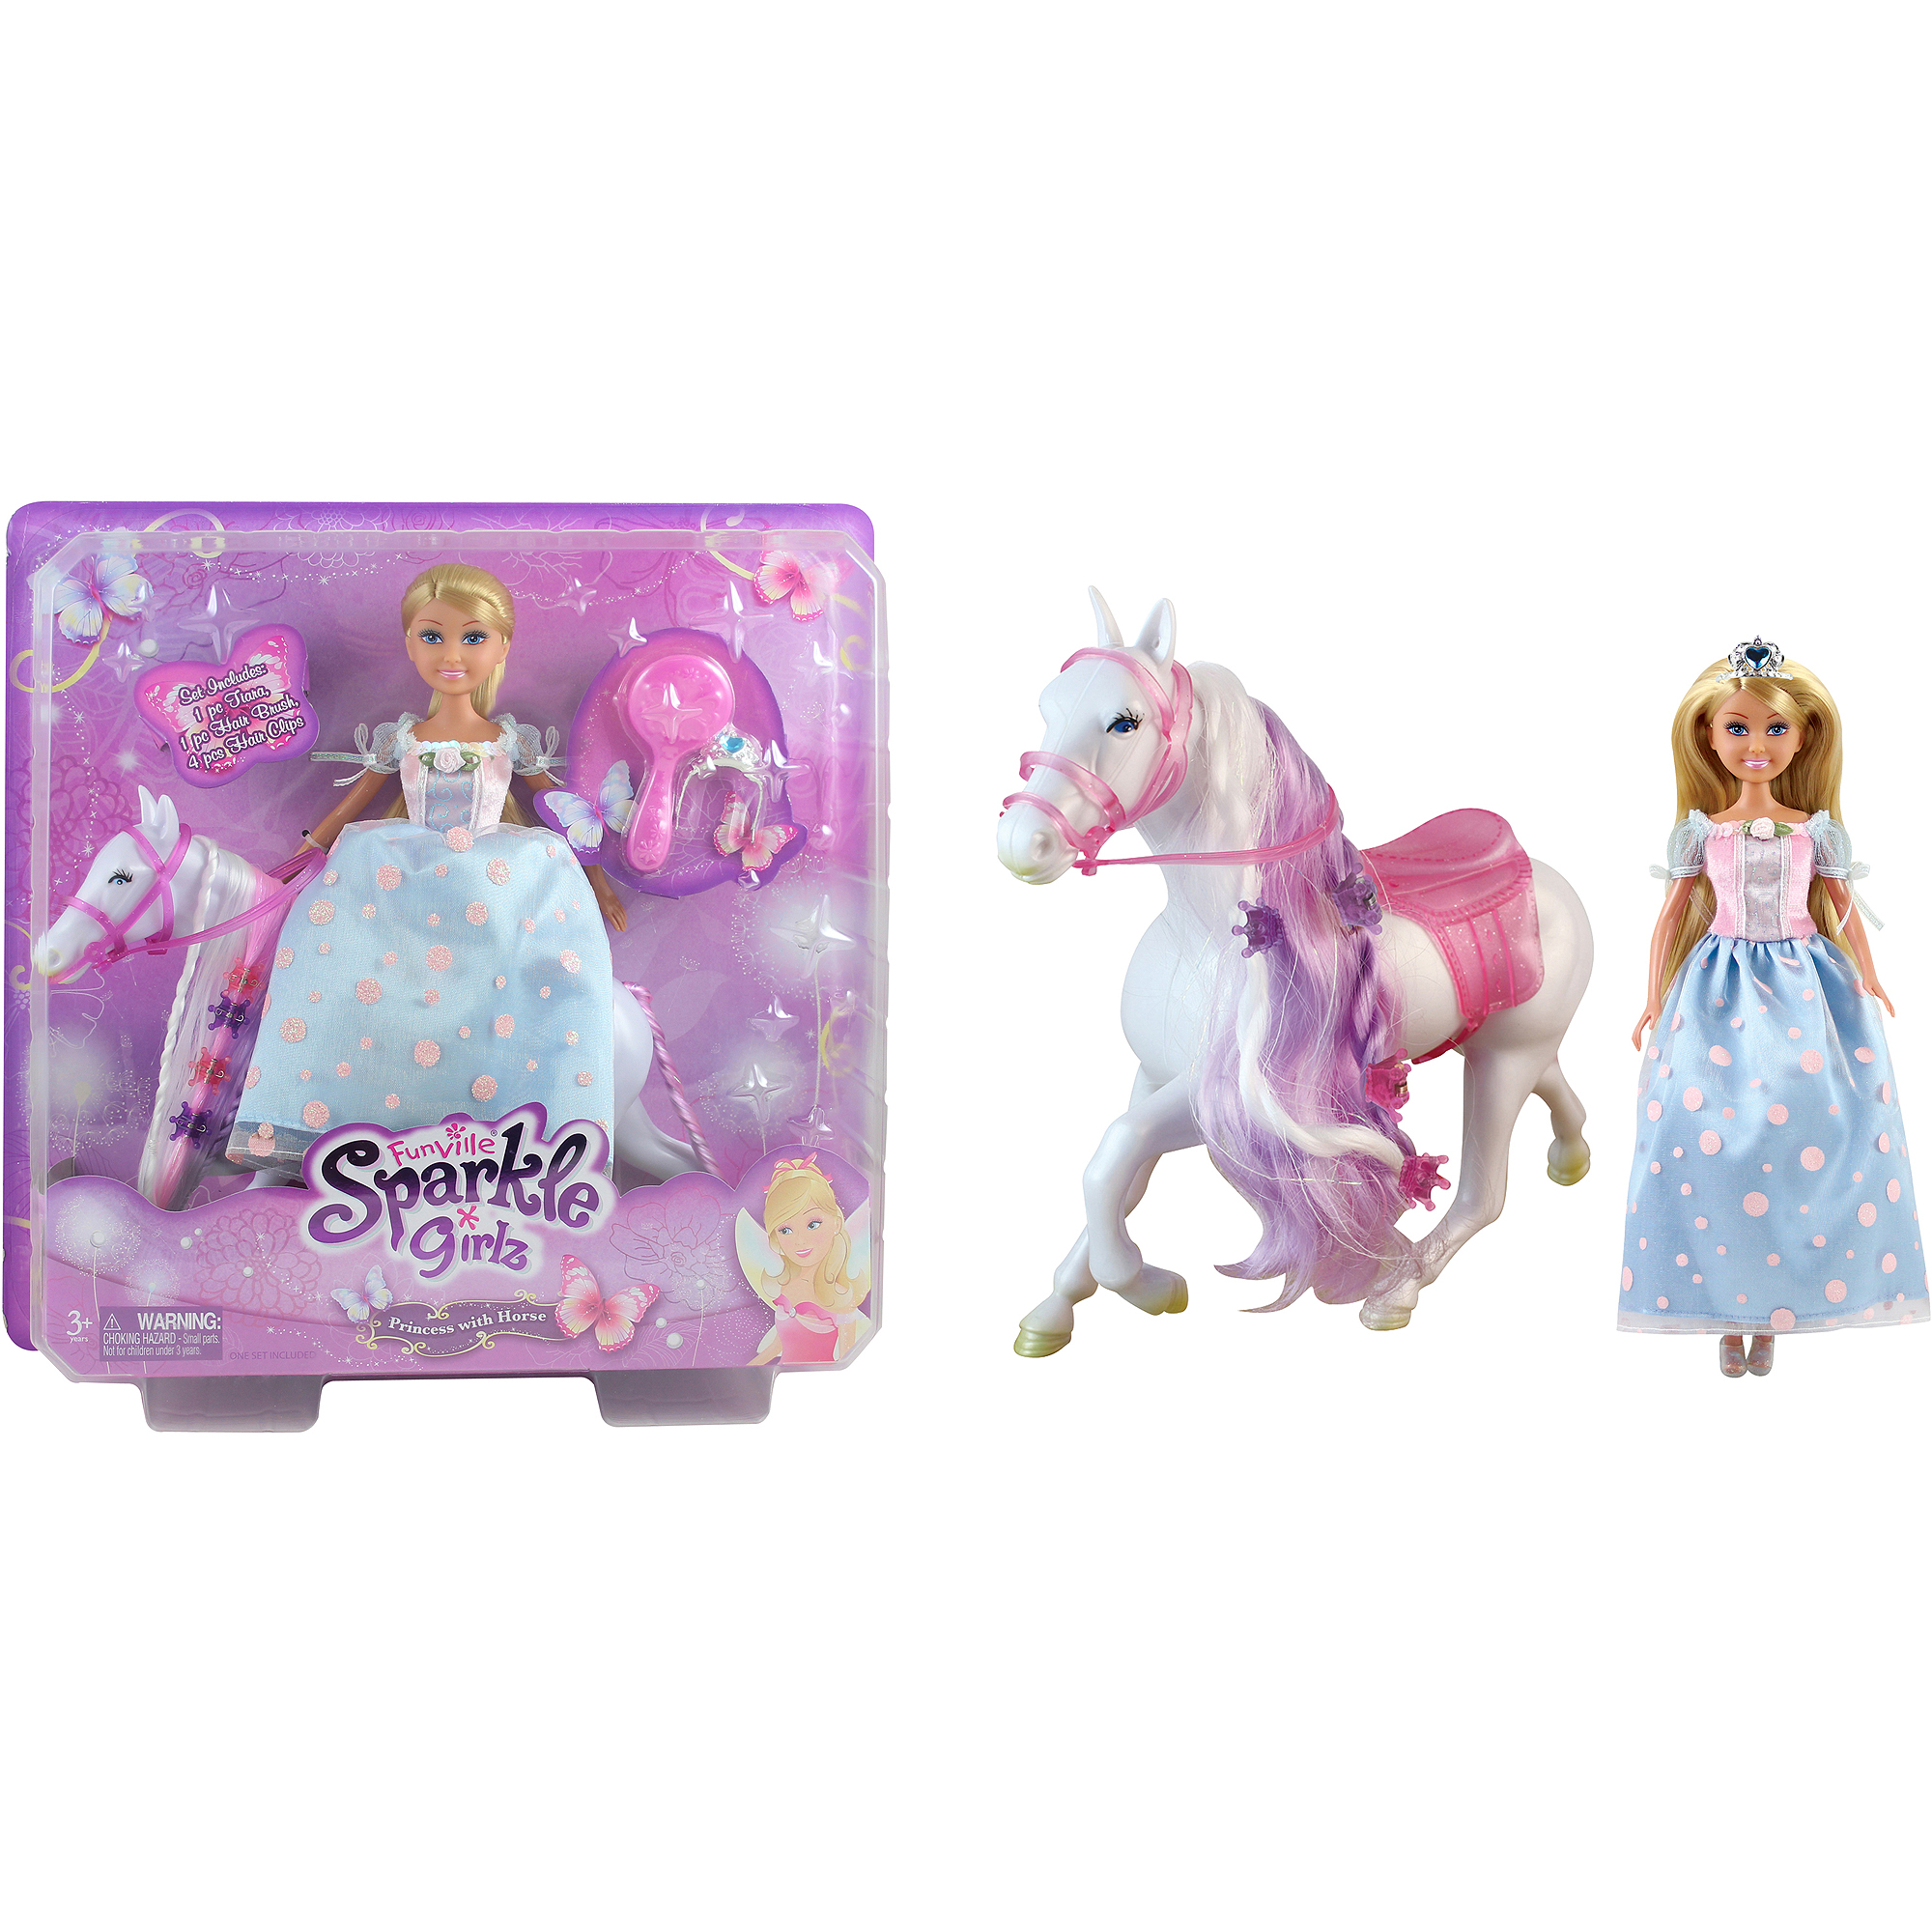 Funville Sparkle Girlz Princess with Horse Set, Caucasian, Style #2 by LIAN PING GREAT PERFORMANCE TOYS PRODUCT FACTORY